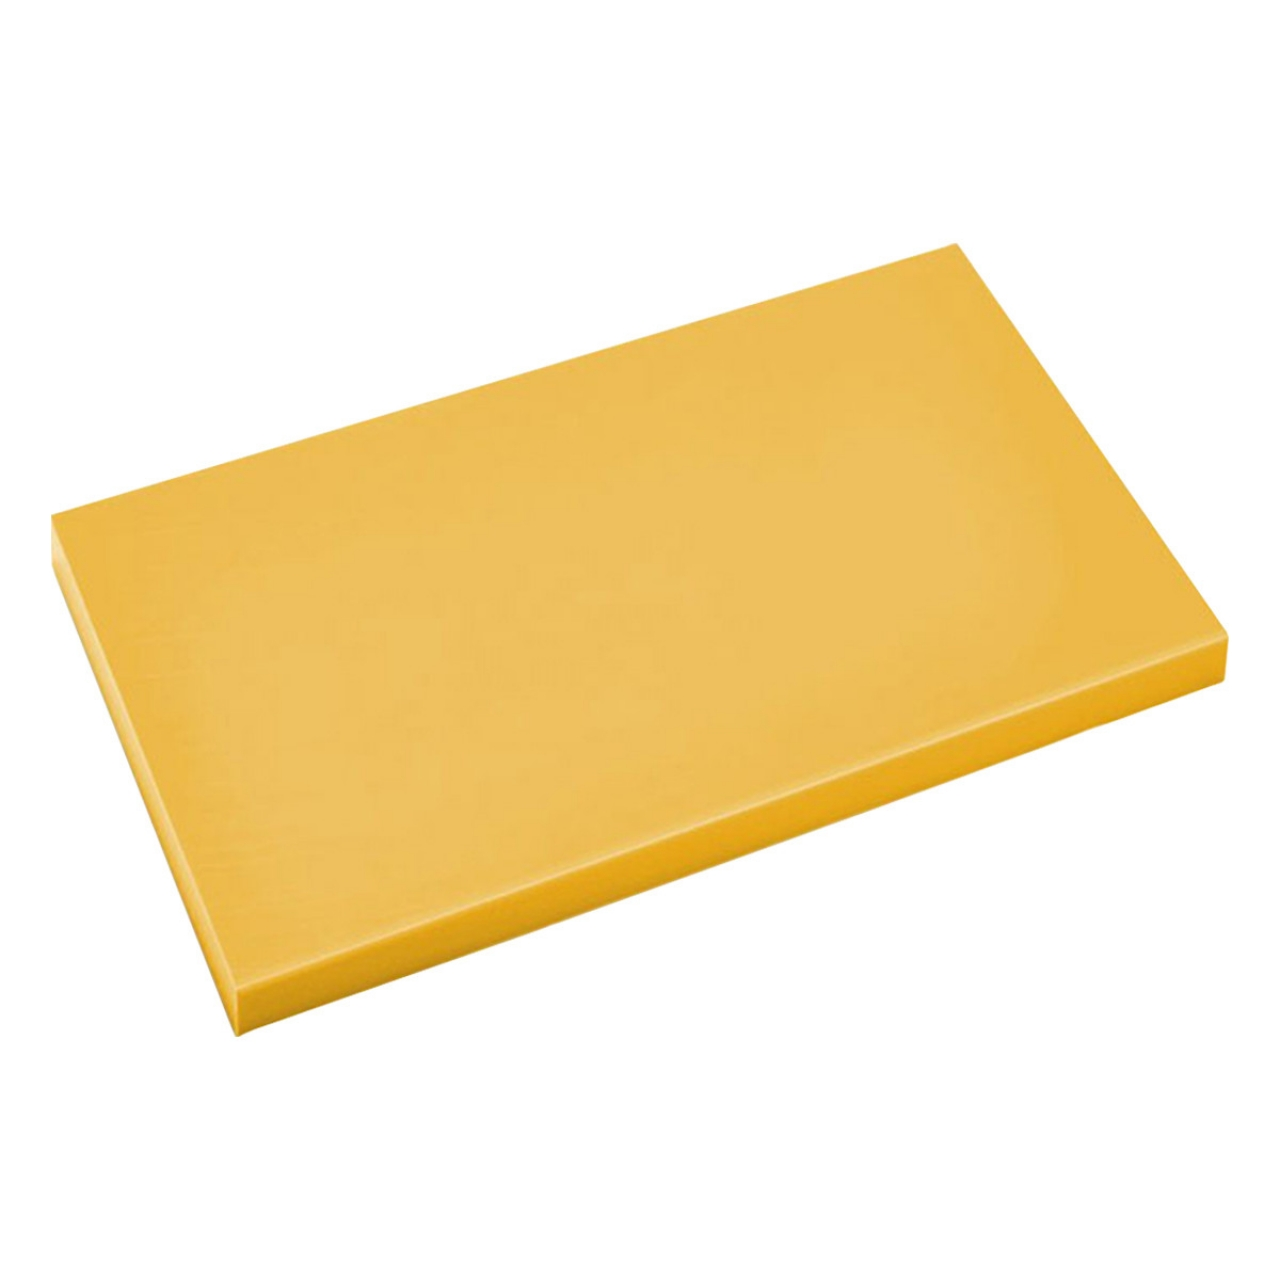 Cutting board 40x60cm yellow